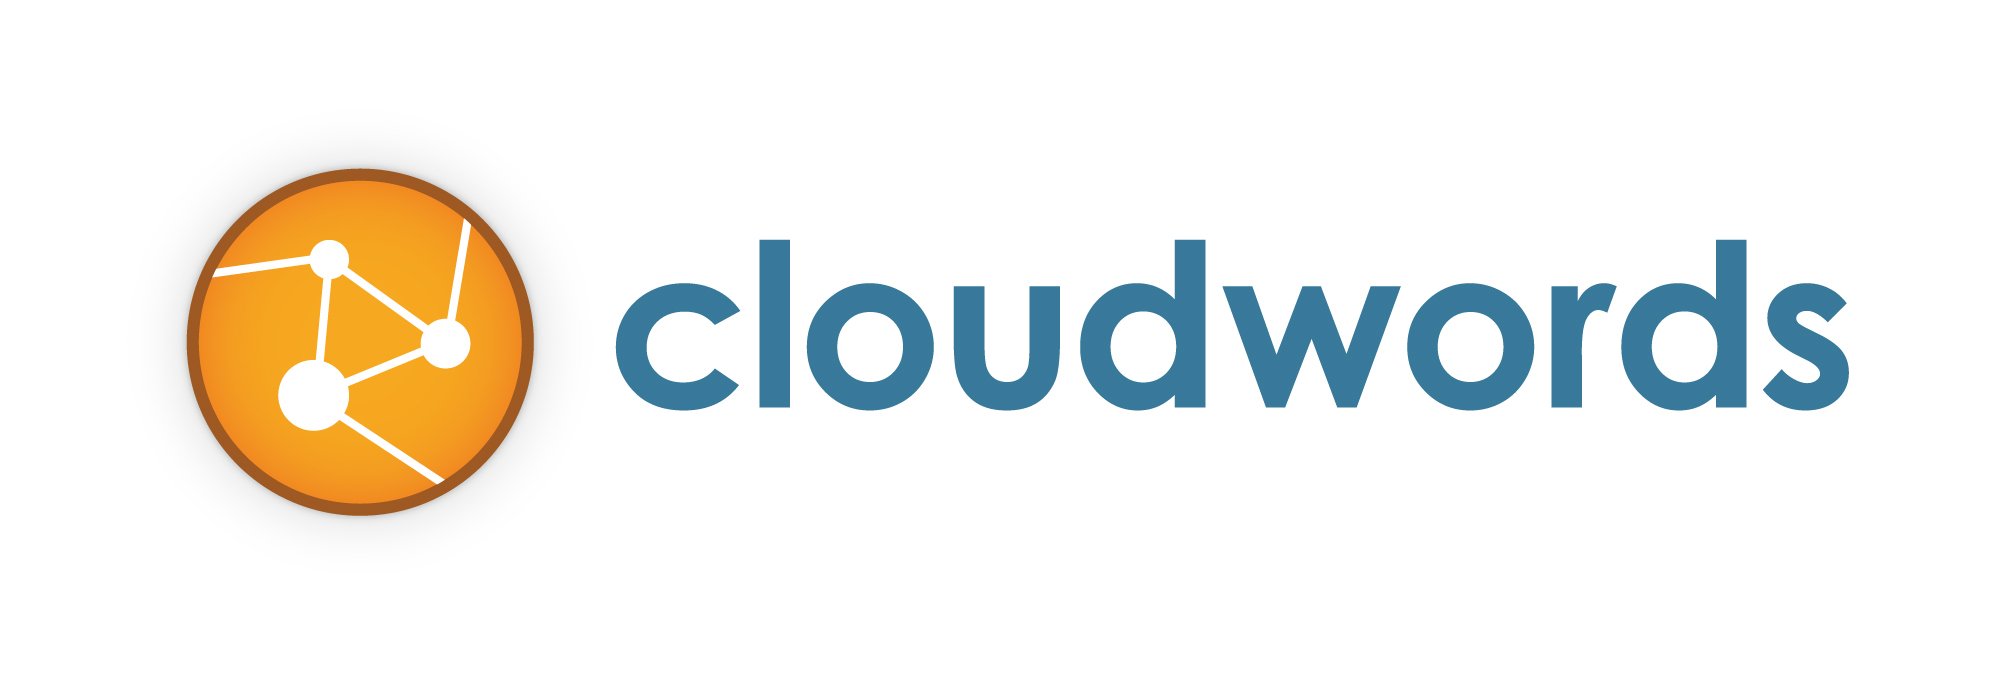 cloudwords-logo